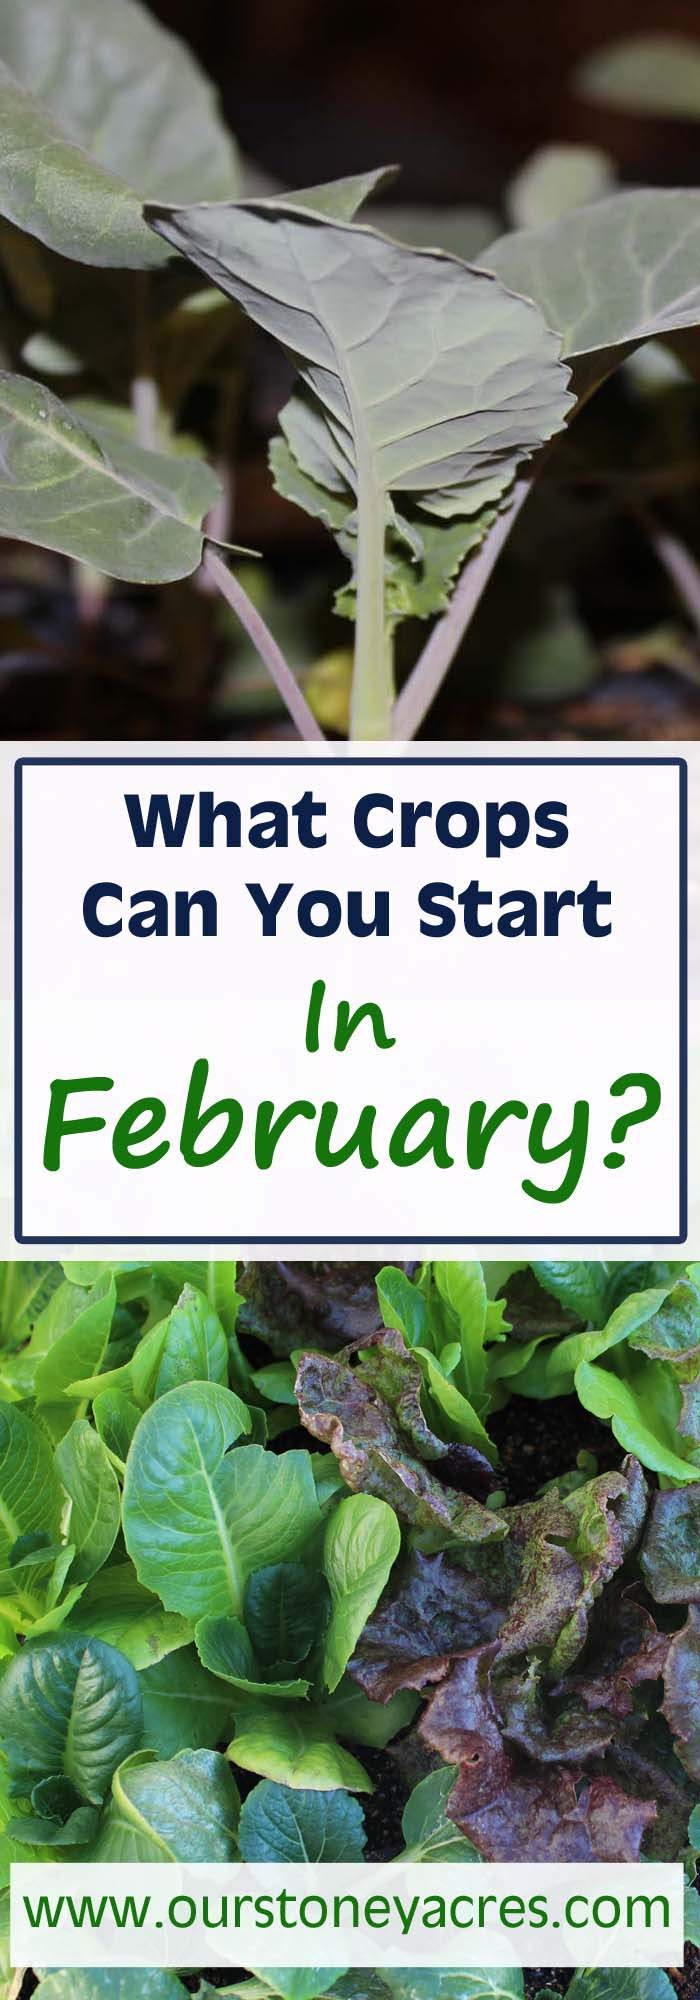 February Seed Starting Schedule #2